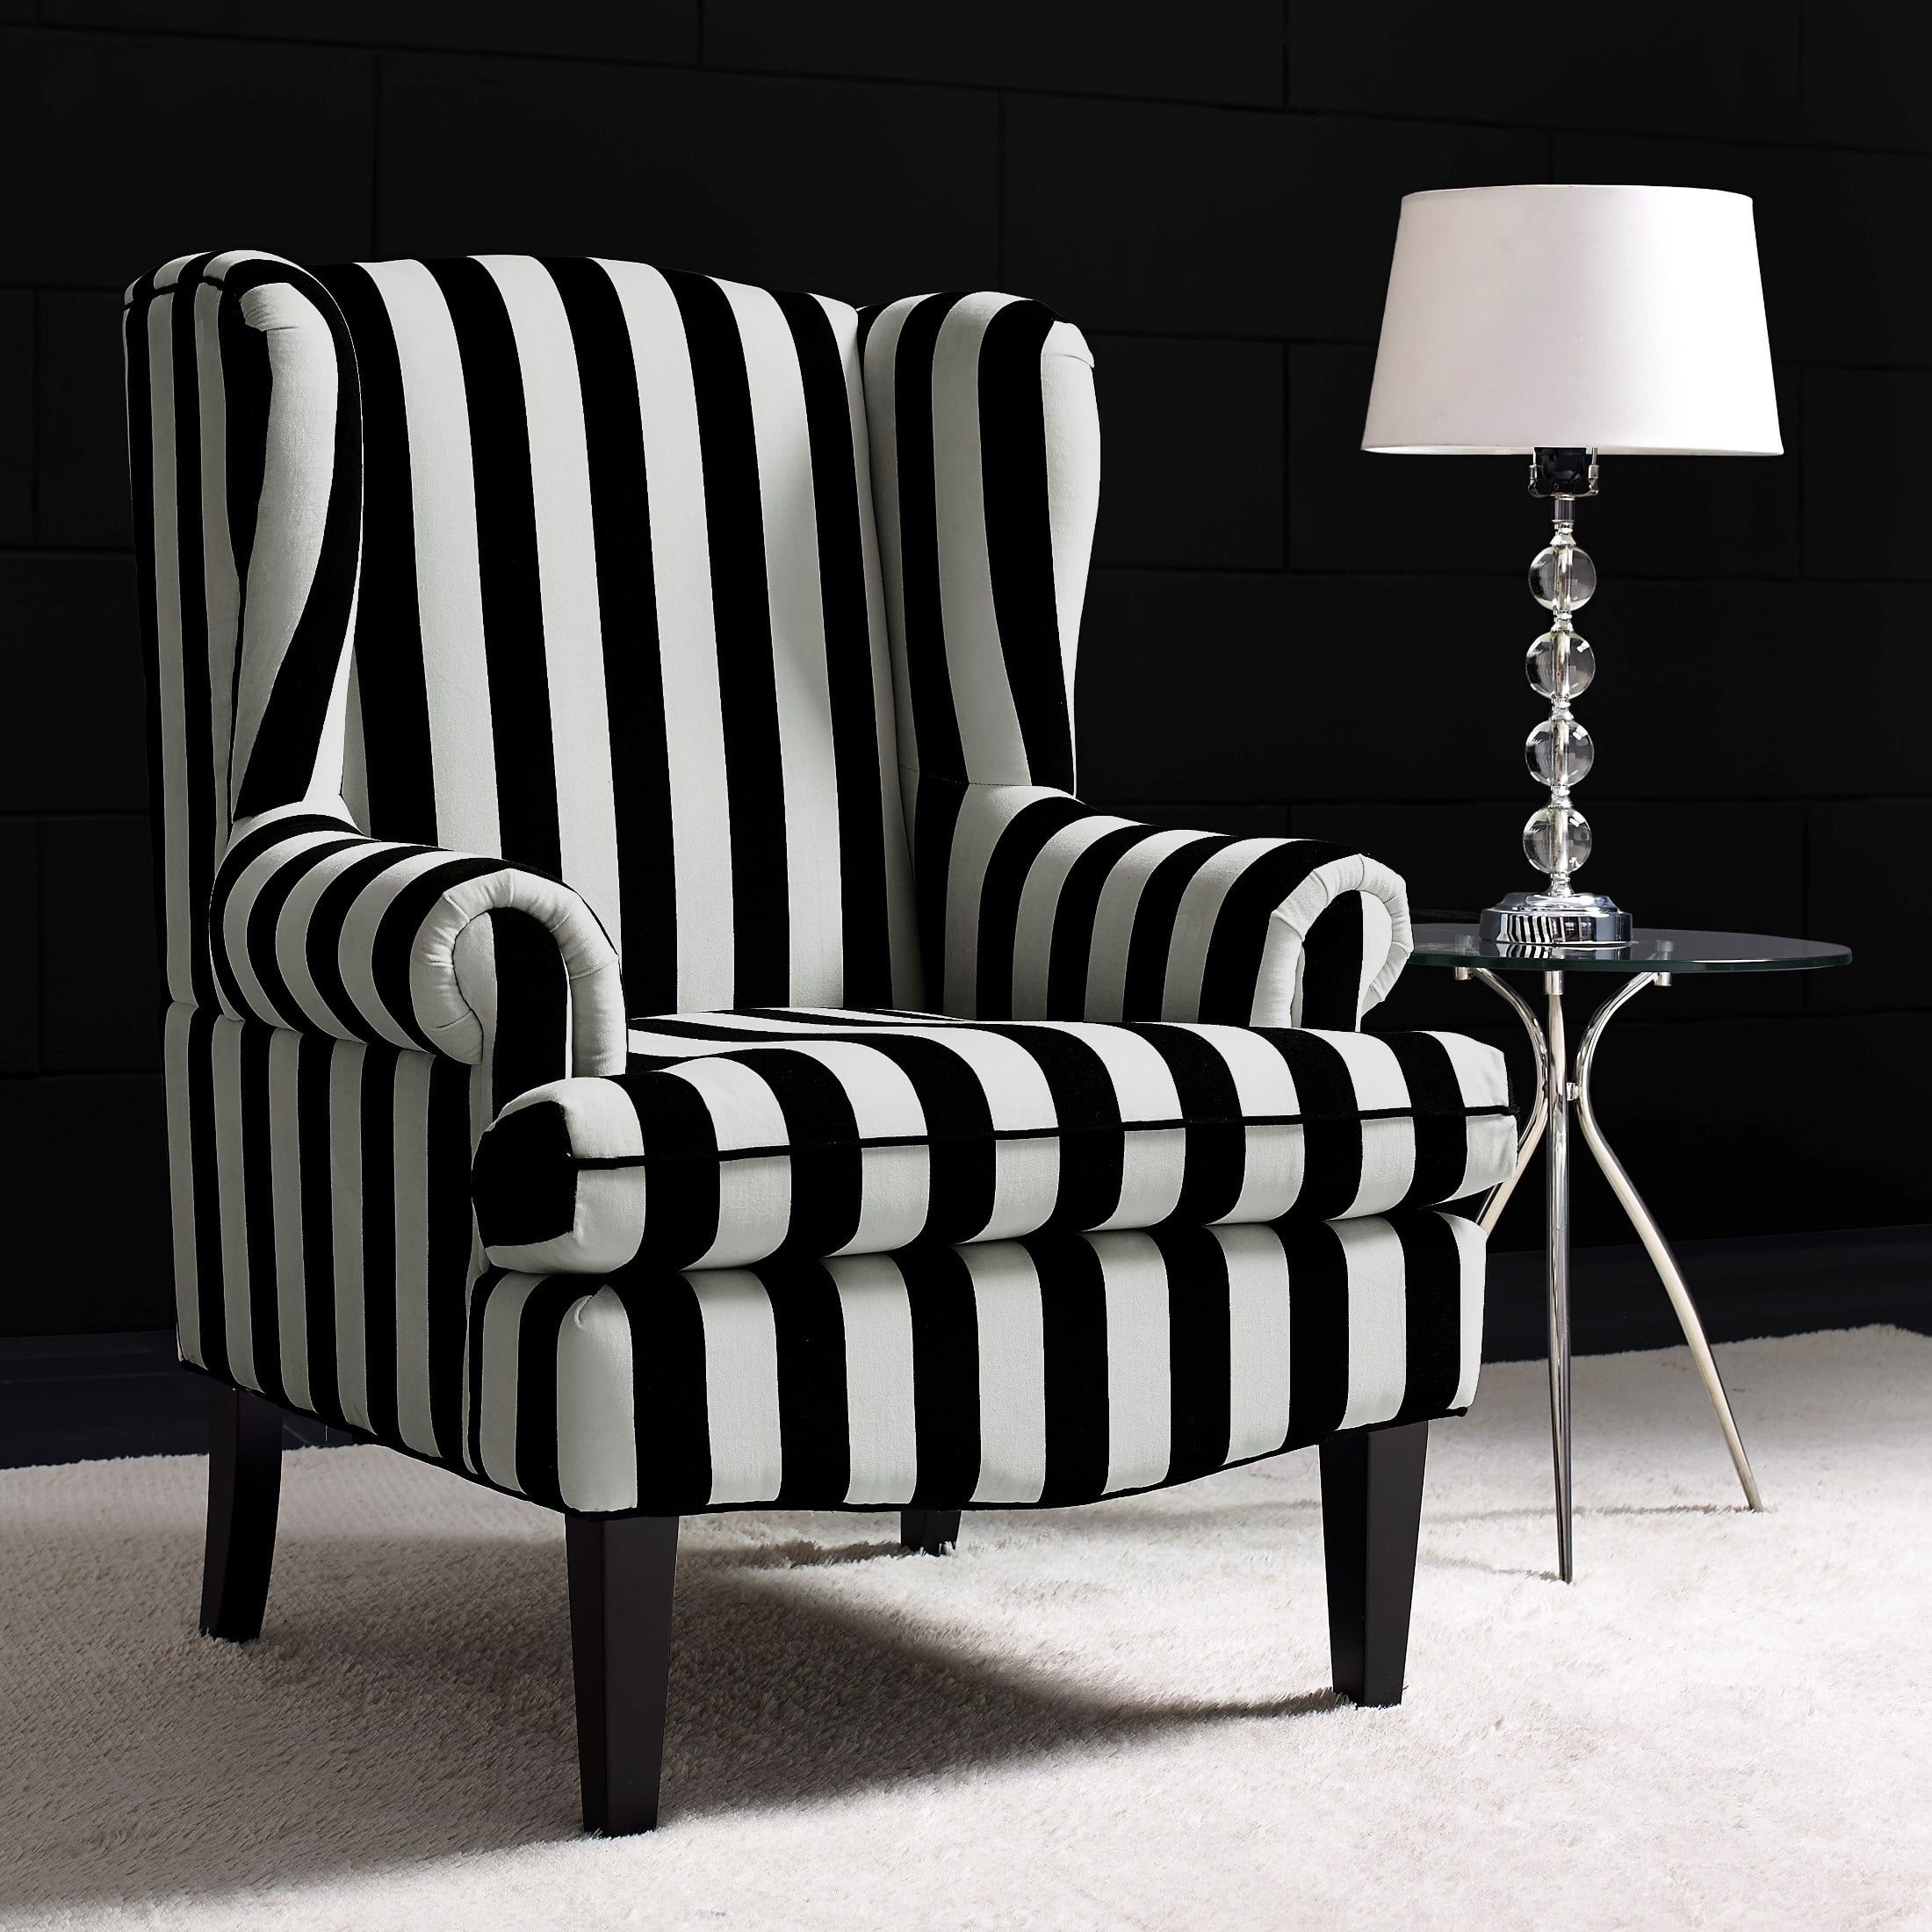 Paris Velvet Wingback Chair from TOV A61